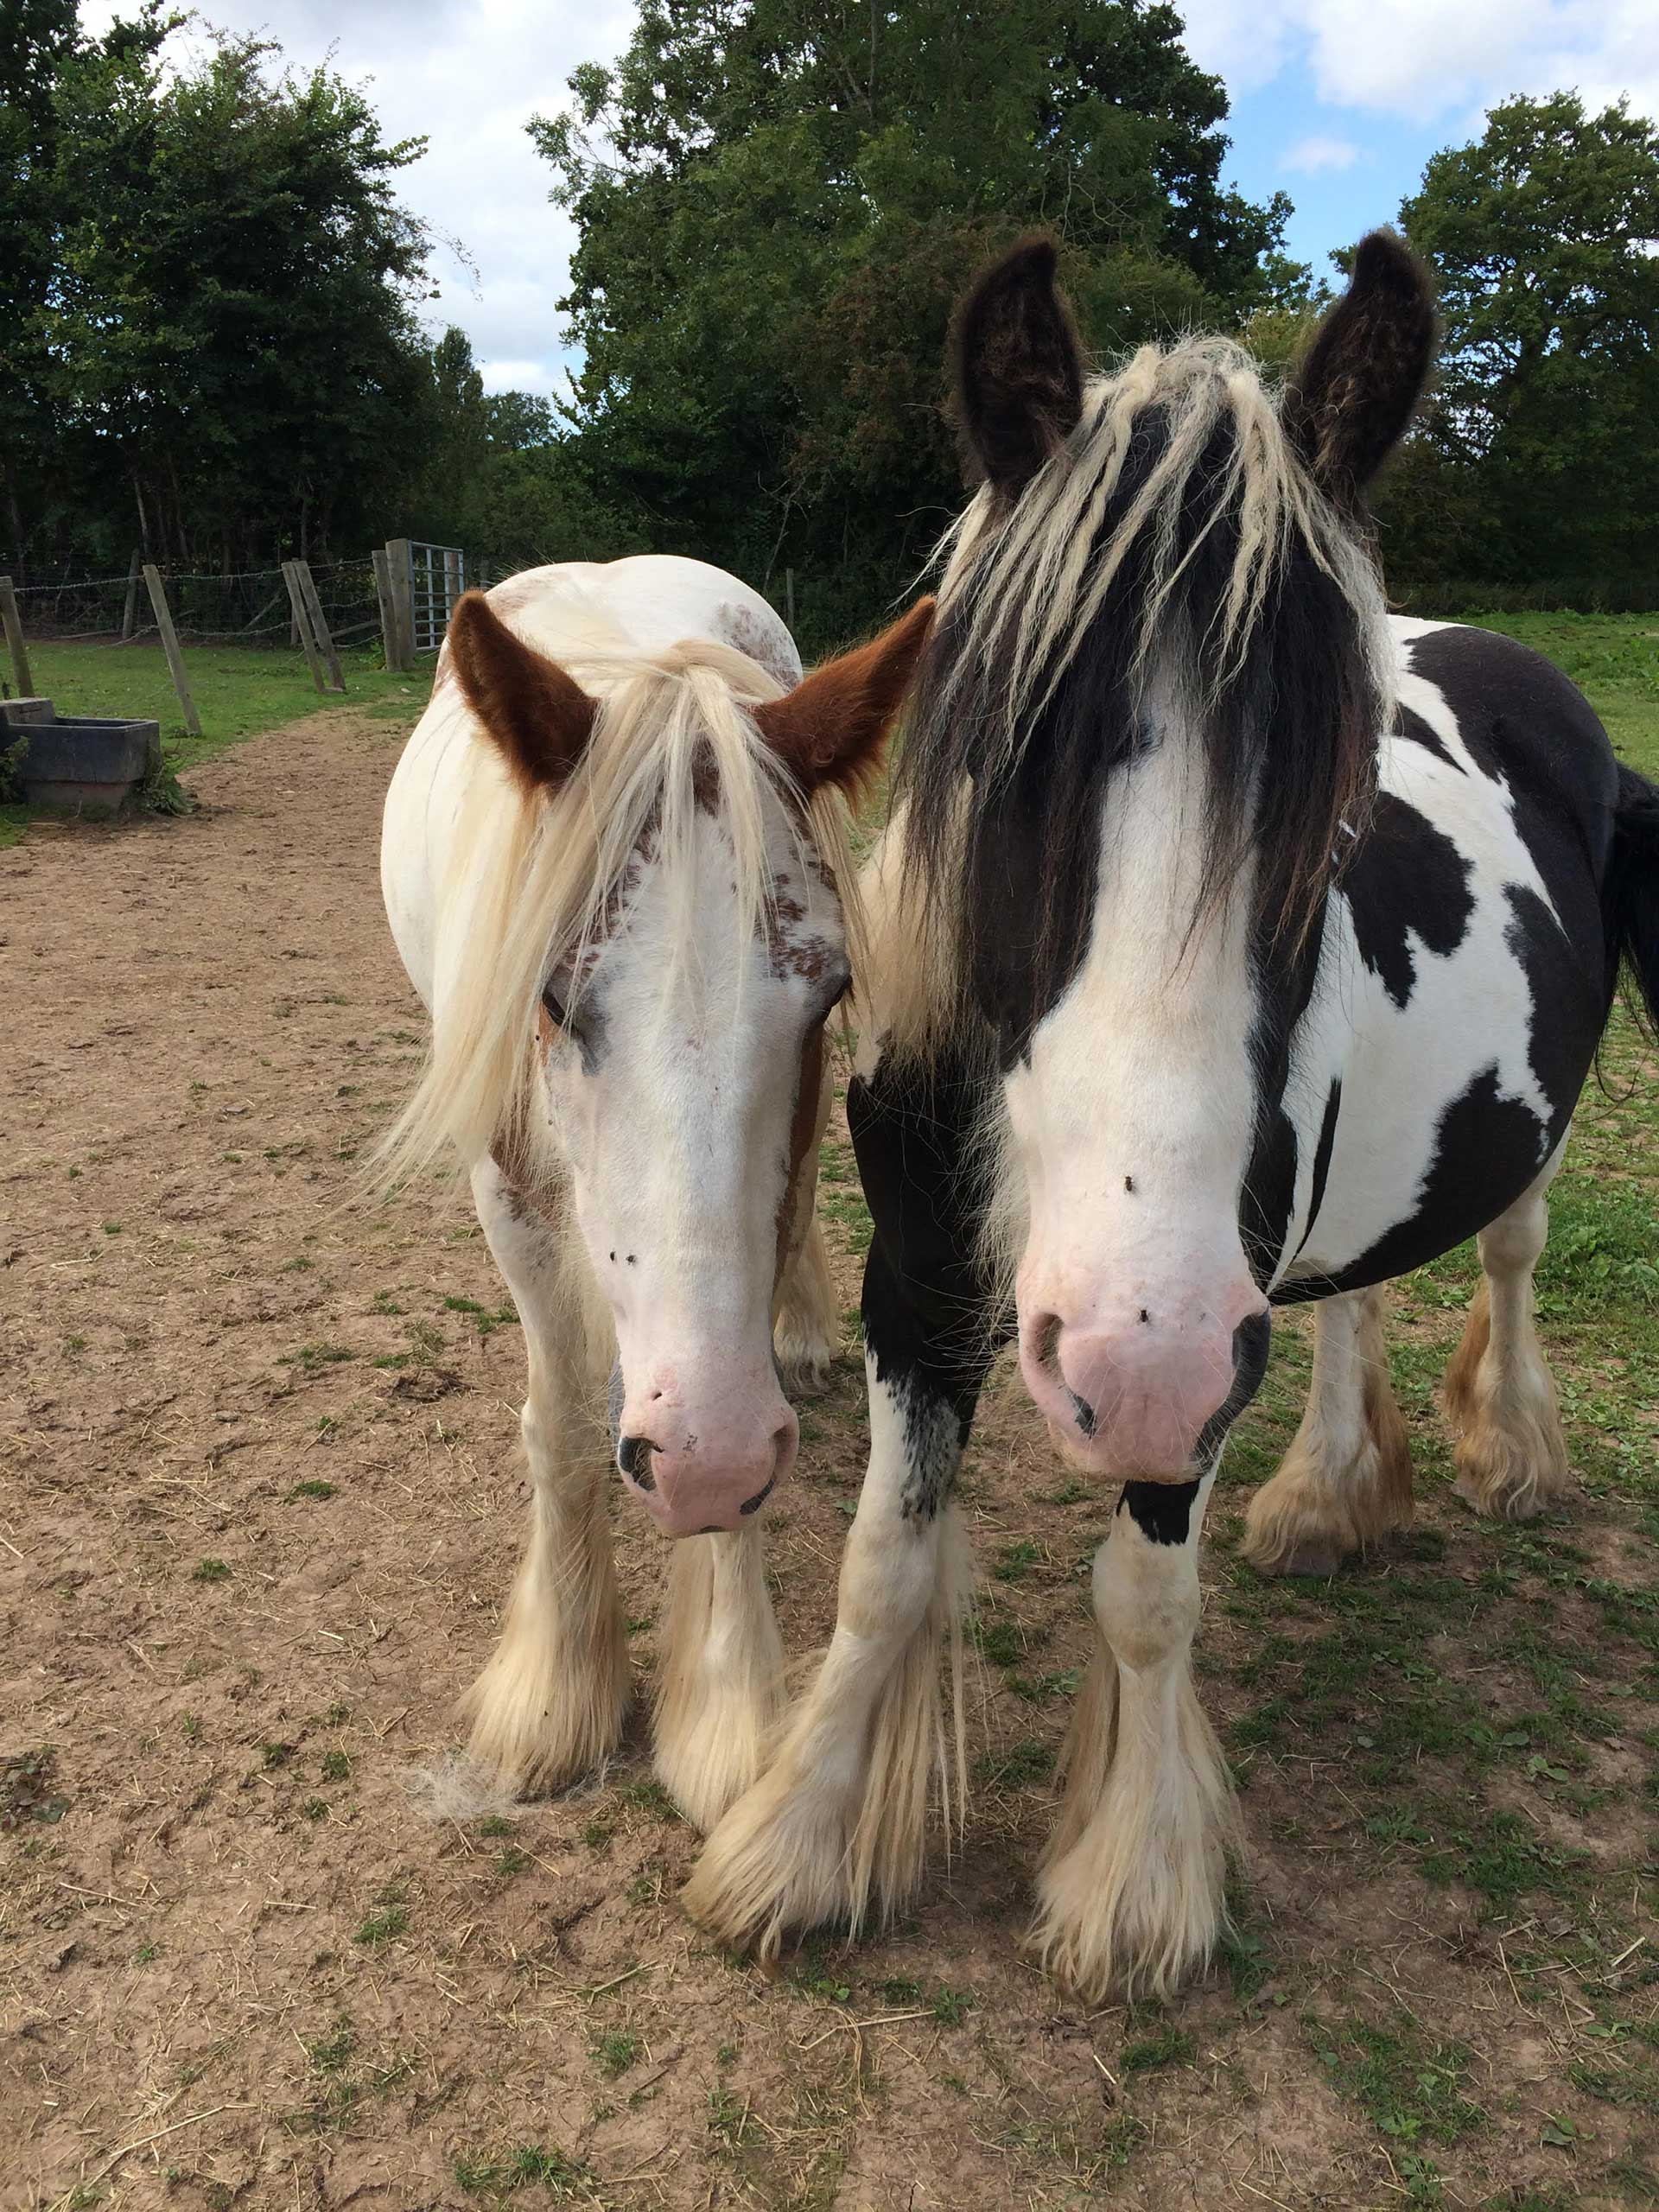 Two rescue horses in a field